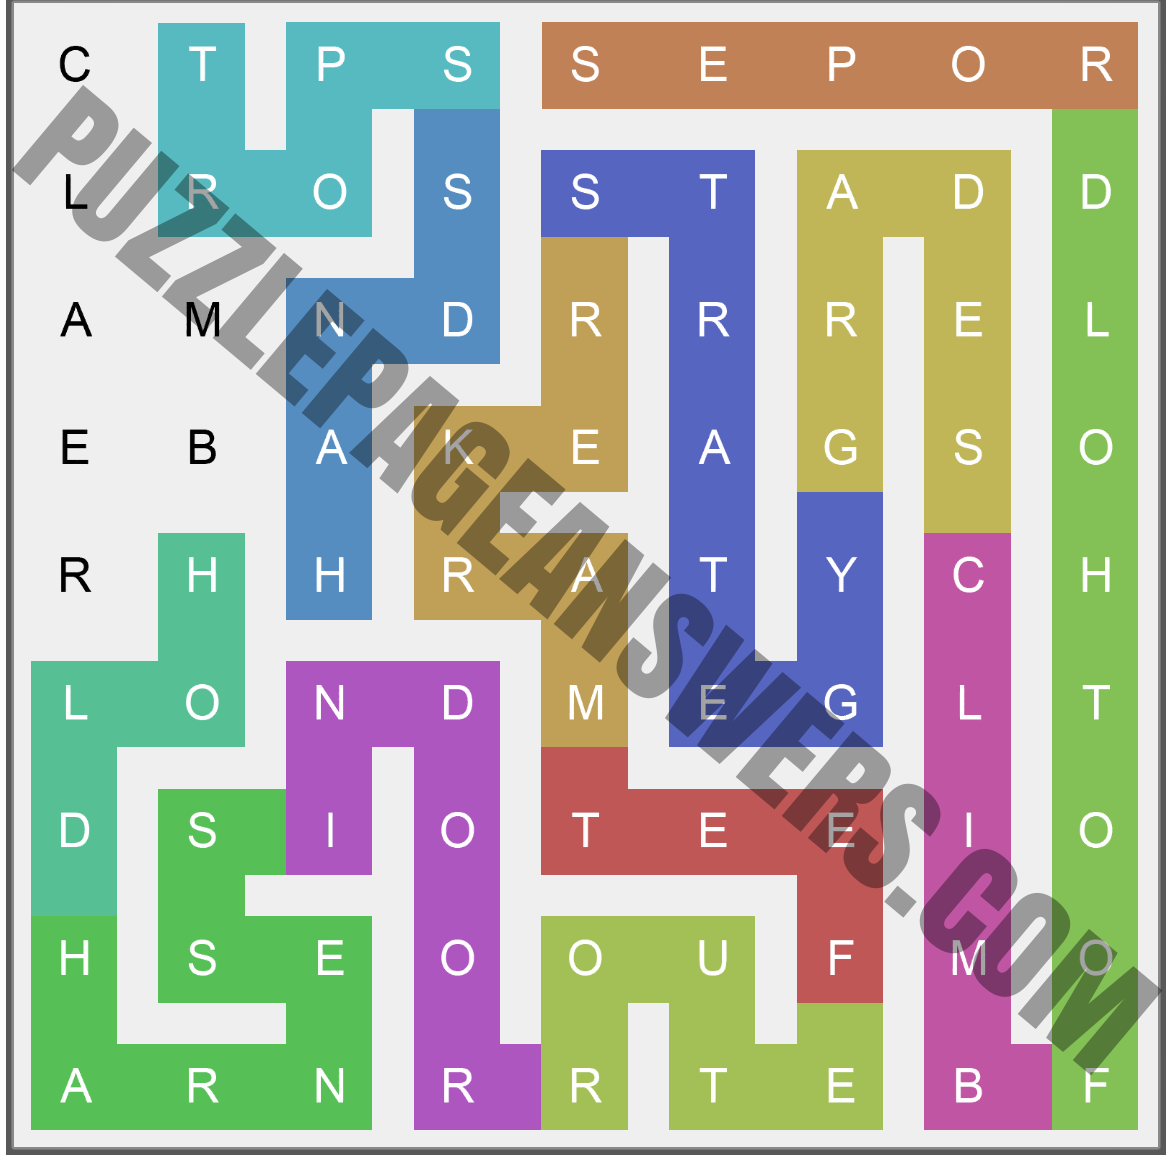 Puzzle Page Words Snake June 3 2020 Answers ...